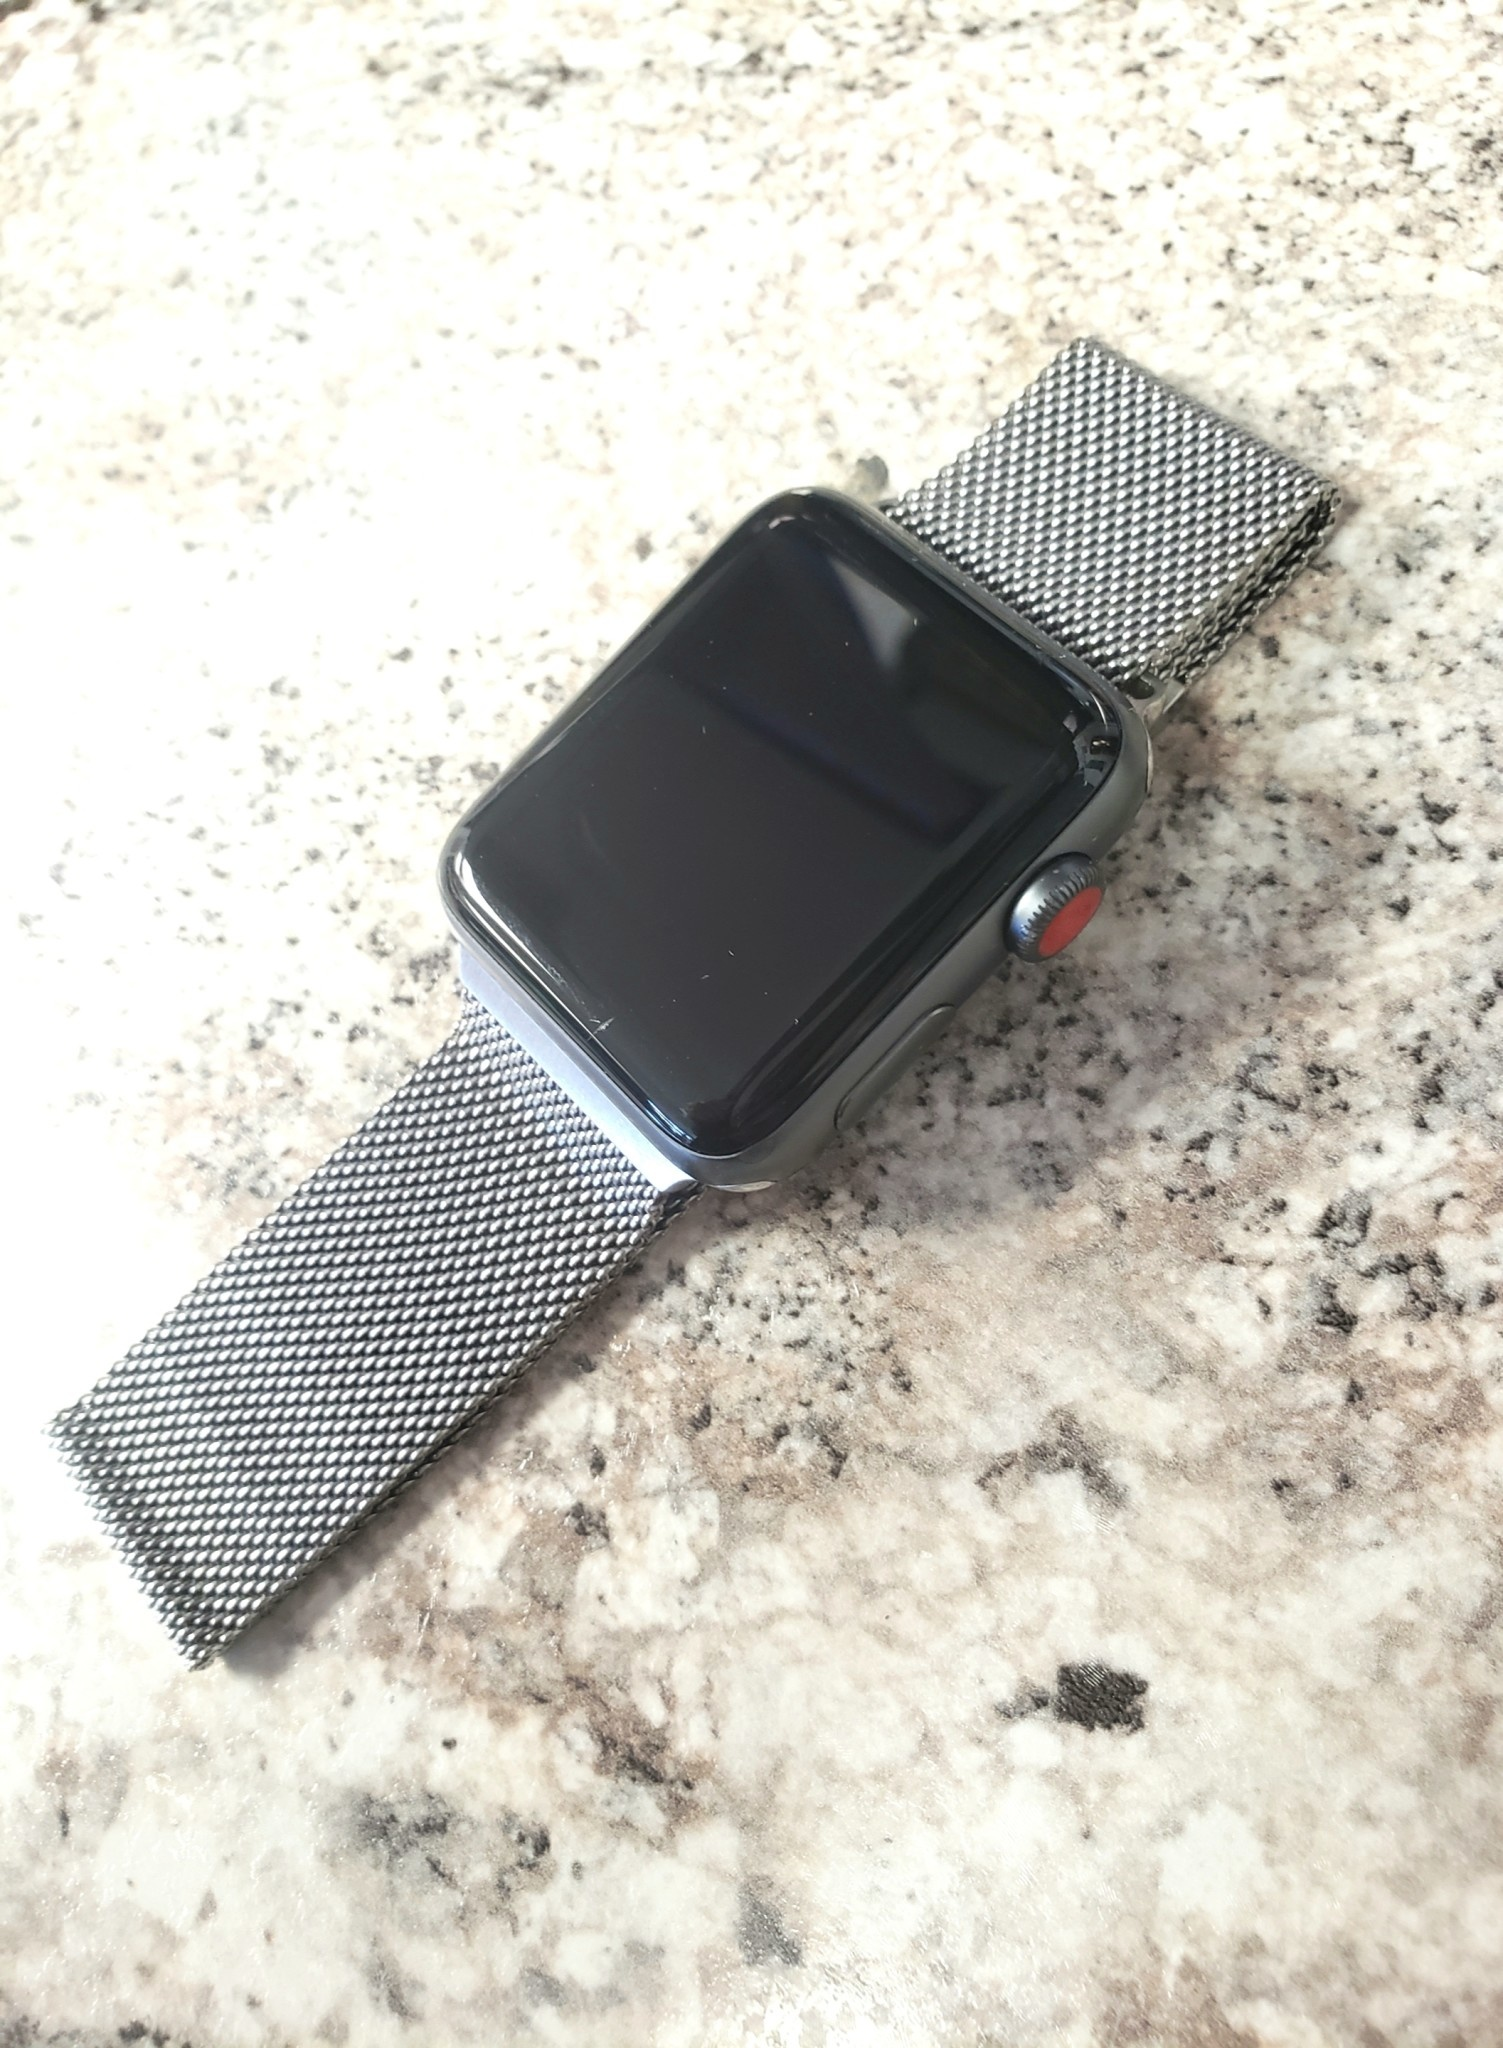 4G/GPS - Apple Watch Series 3 - 42mm - Nike + - Non-Genuine Band - Fair Condition